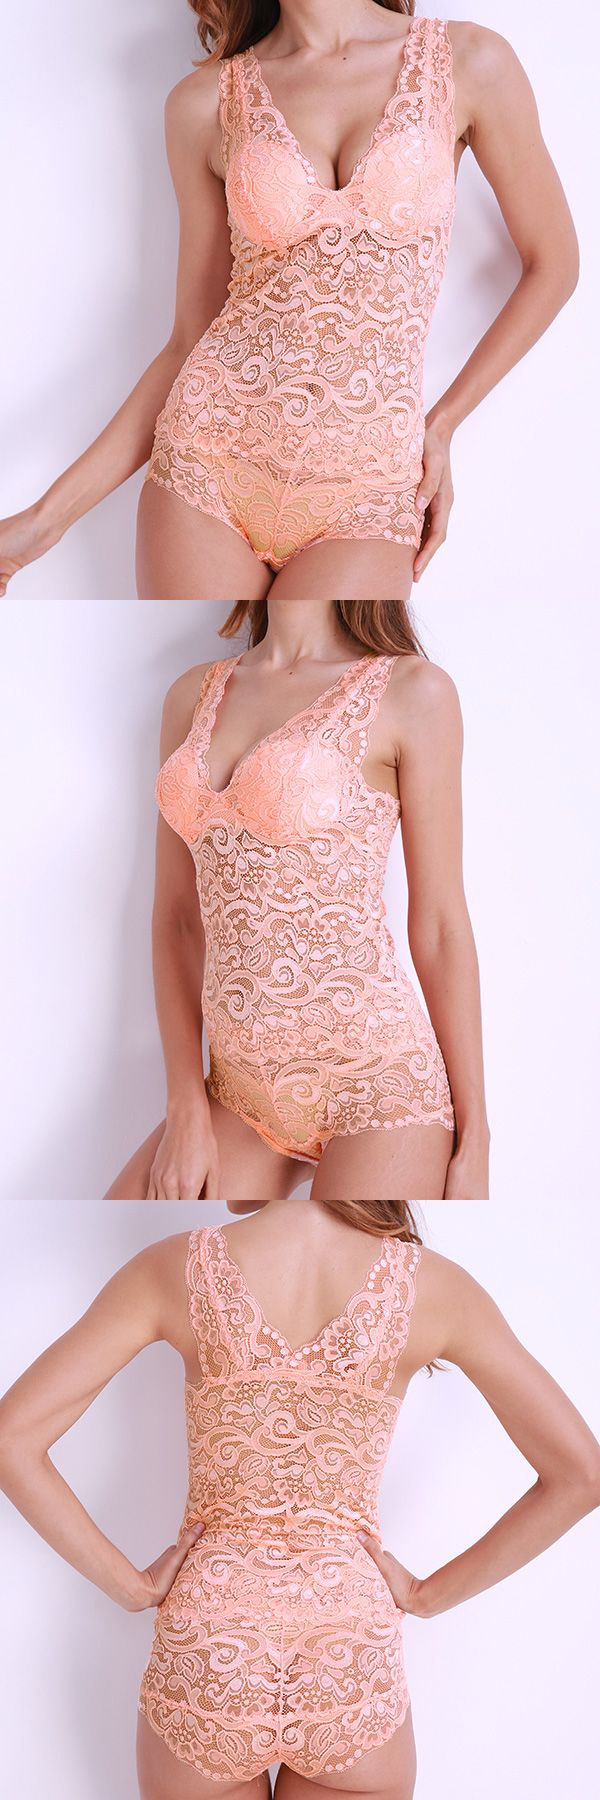 Fadaini Brand Embroidered Lace Bra Sets Seamless No Rims Soft Smooth Sleeping Vest Brassiere With Panties